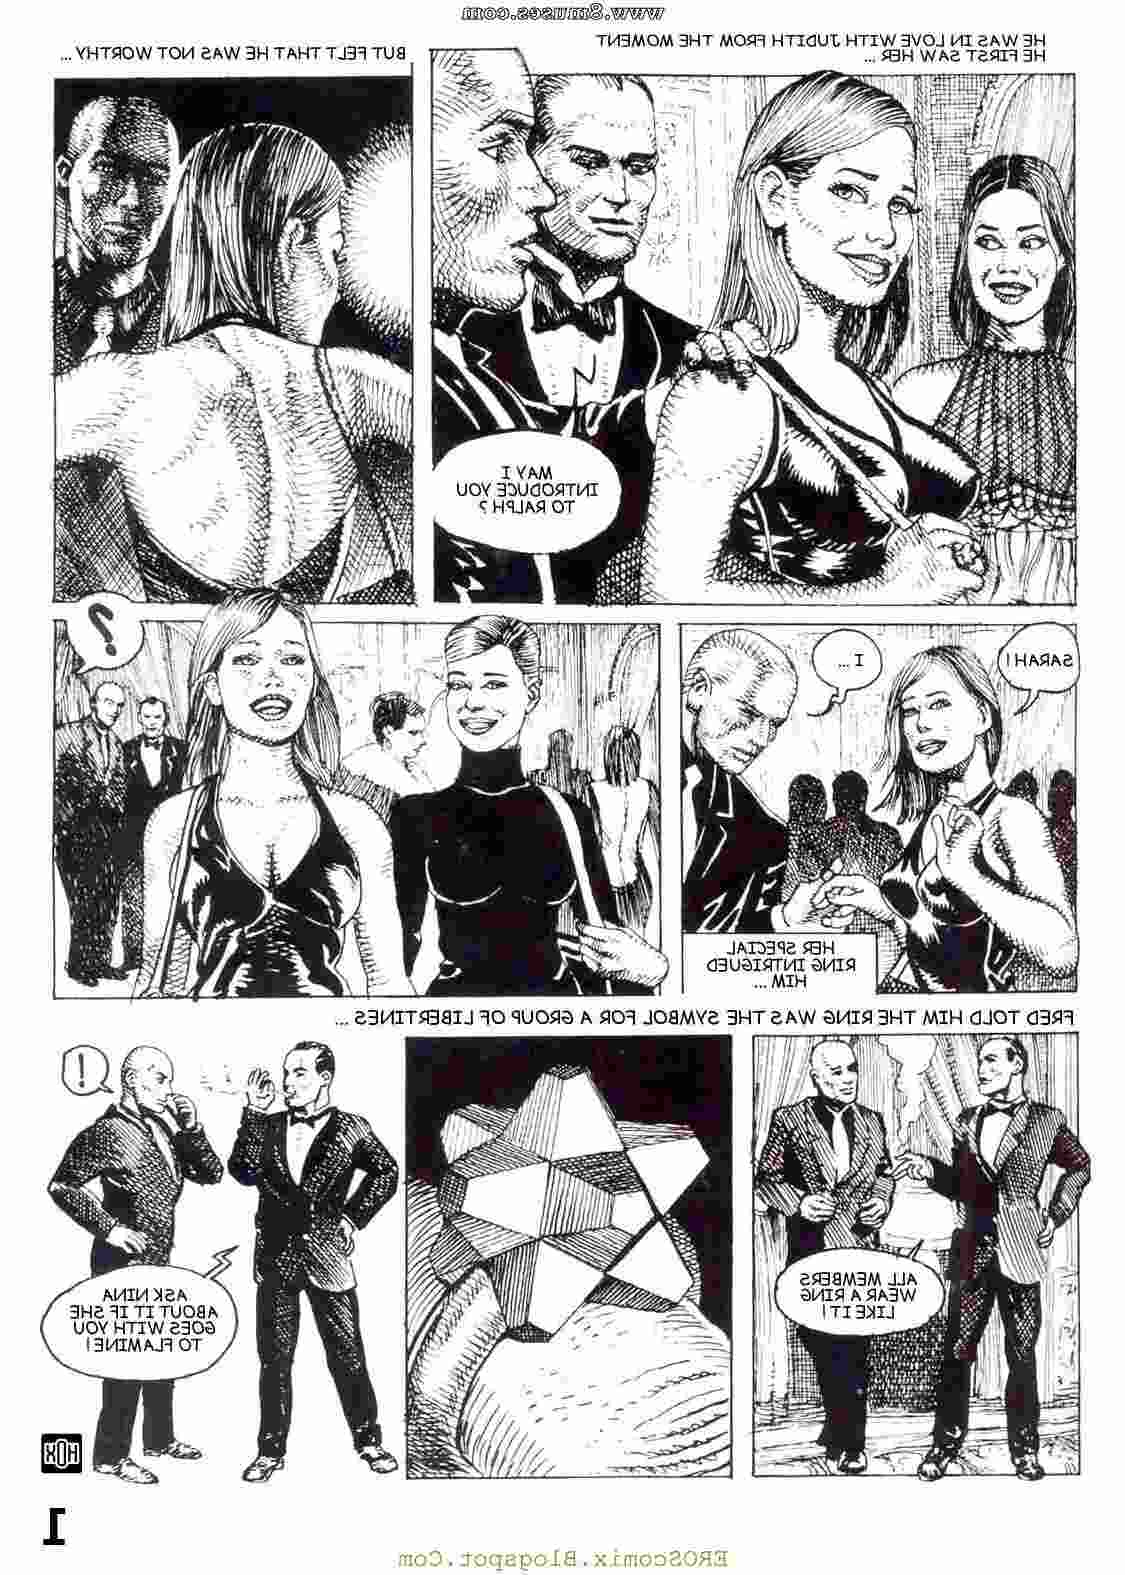 Bruno-Coq-Comics/Secret-Society Secret_Society__8muses_-_Sex_and_Porn_Comics_2.jpg